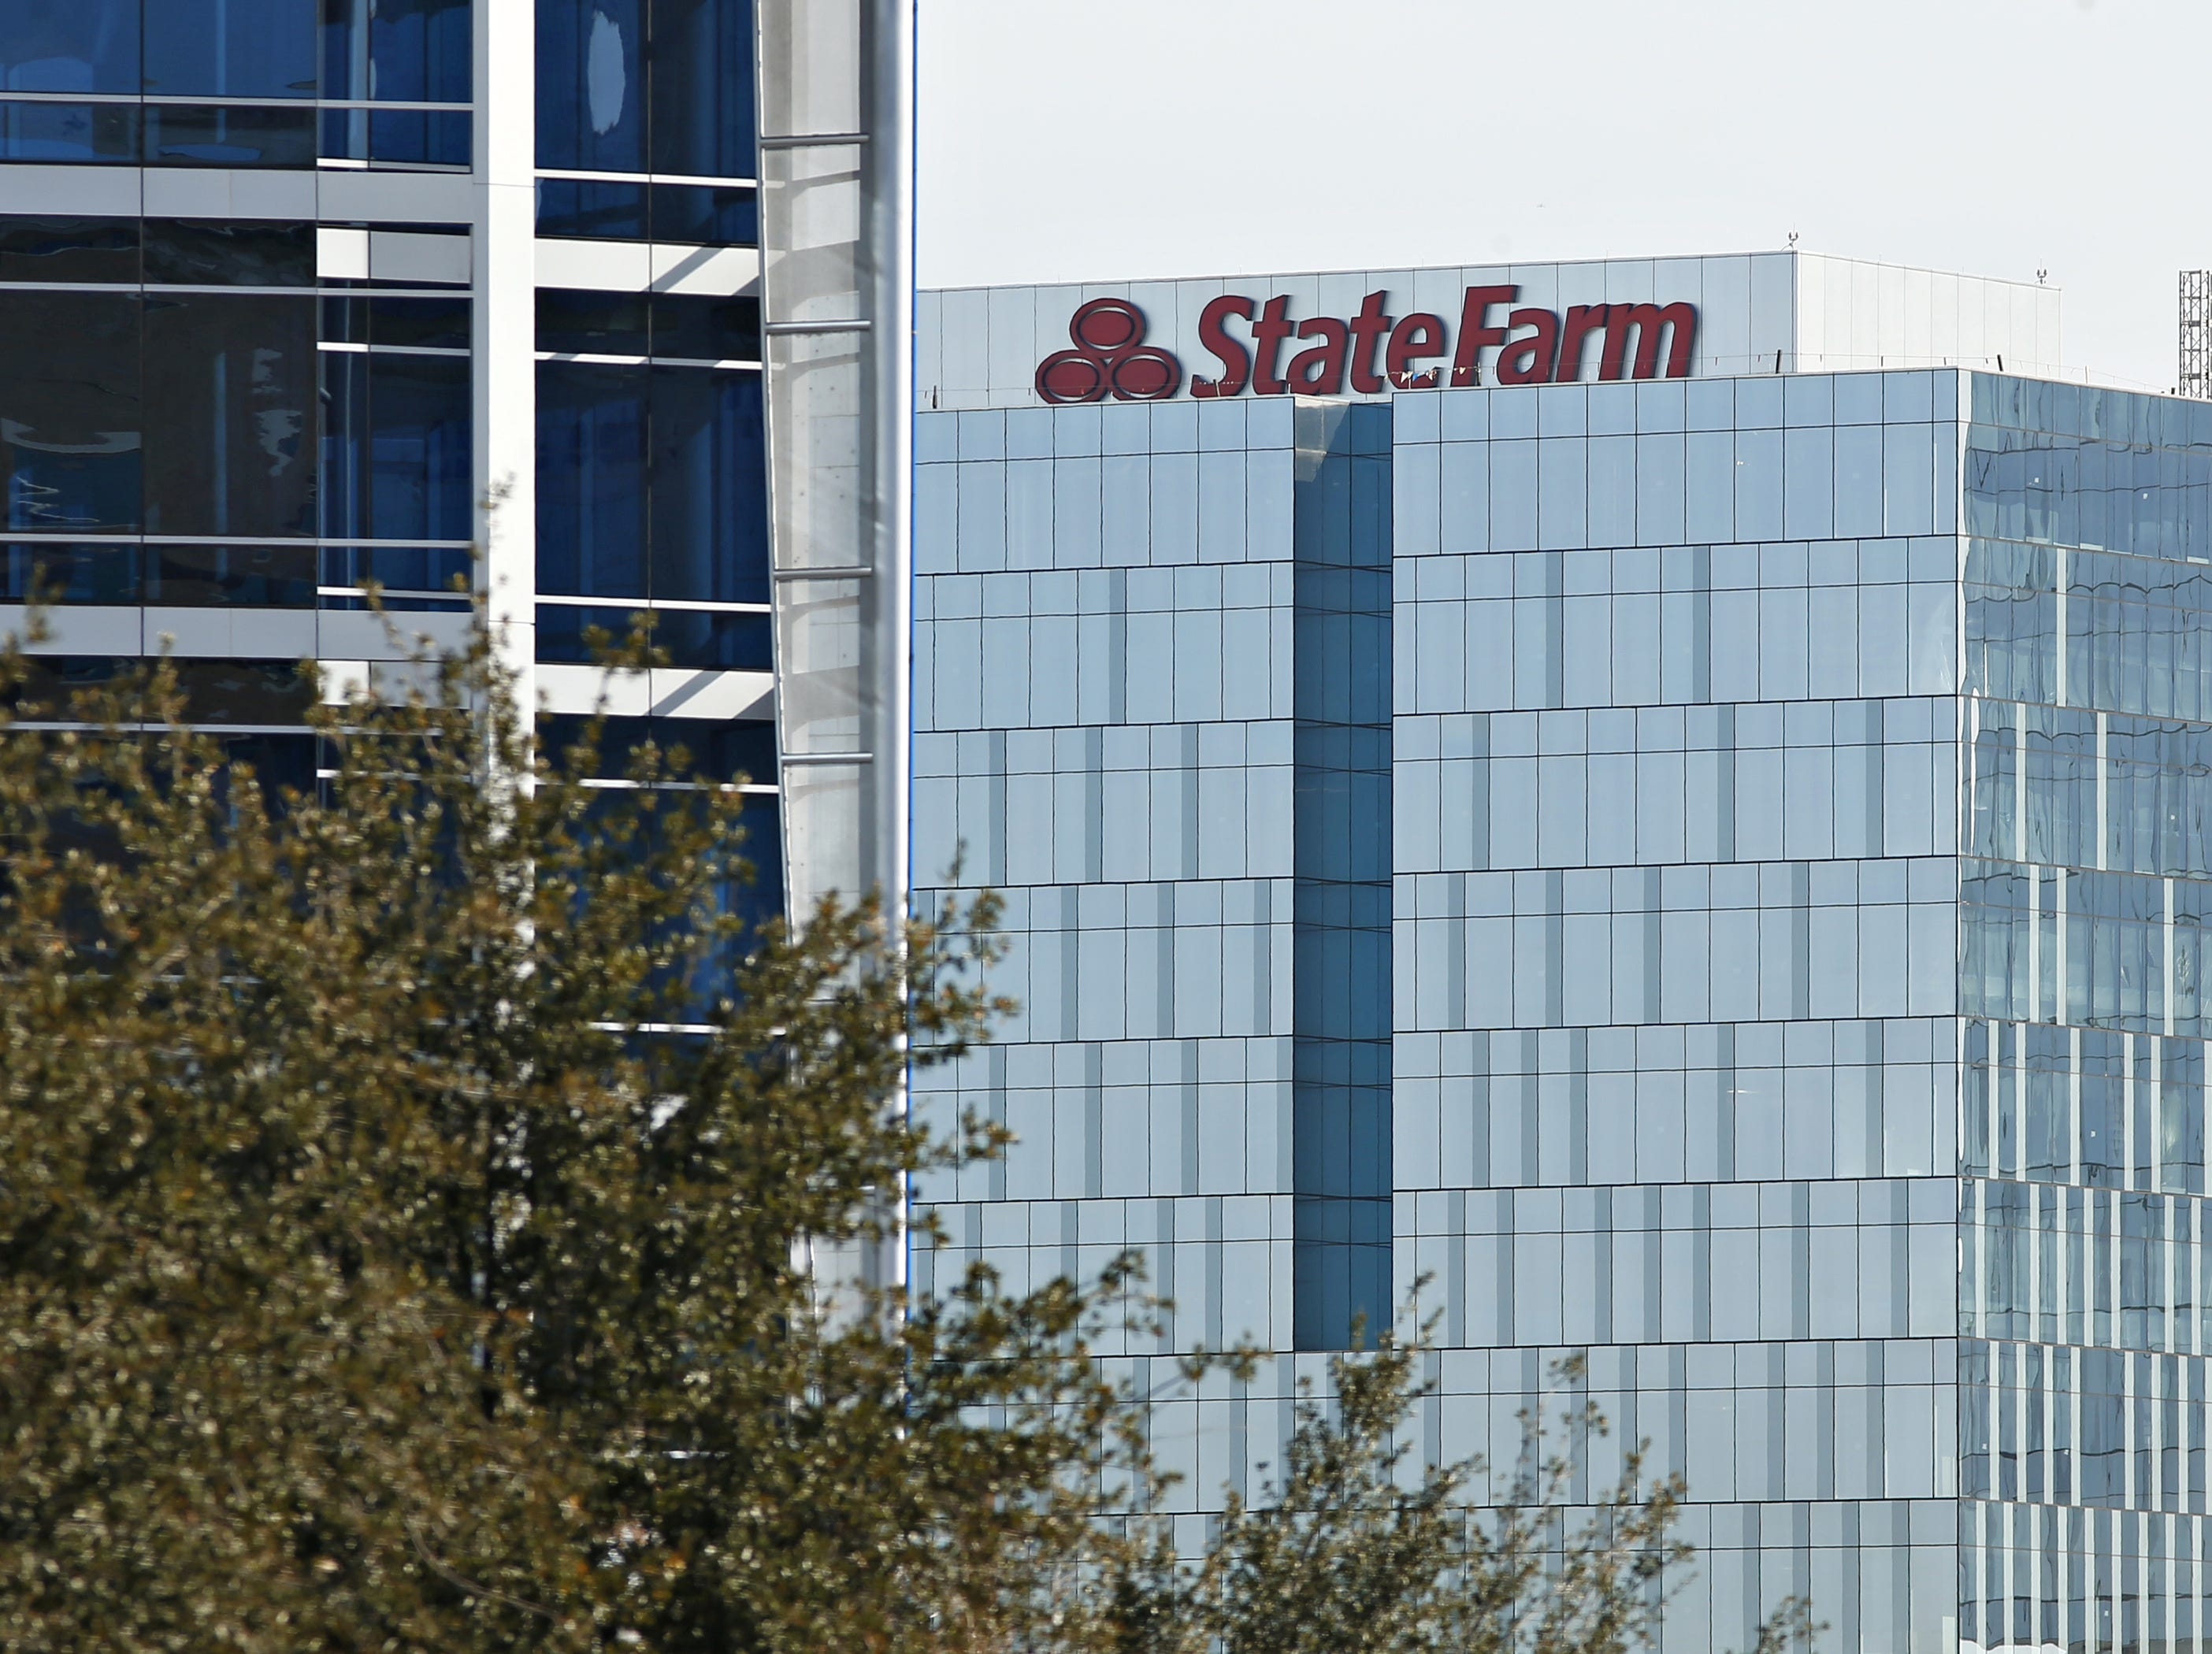 No. 24: State Farm | Property/casualty insurance, financial services | 2019 employees: 7,200 | 2018 employees: 6,700 | Ownership: Mutual | Headquarters: Bloomington, Illinois | www.statefarm.com